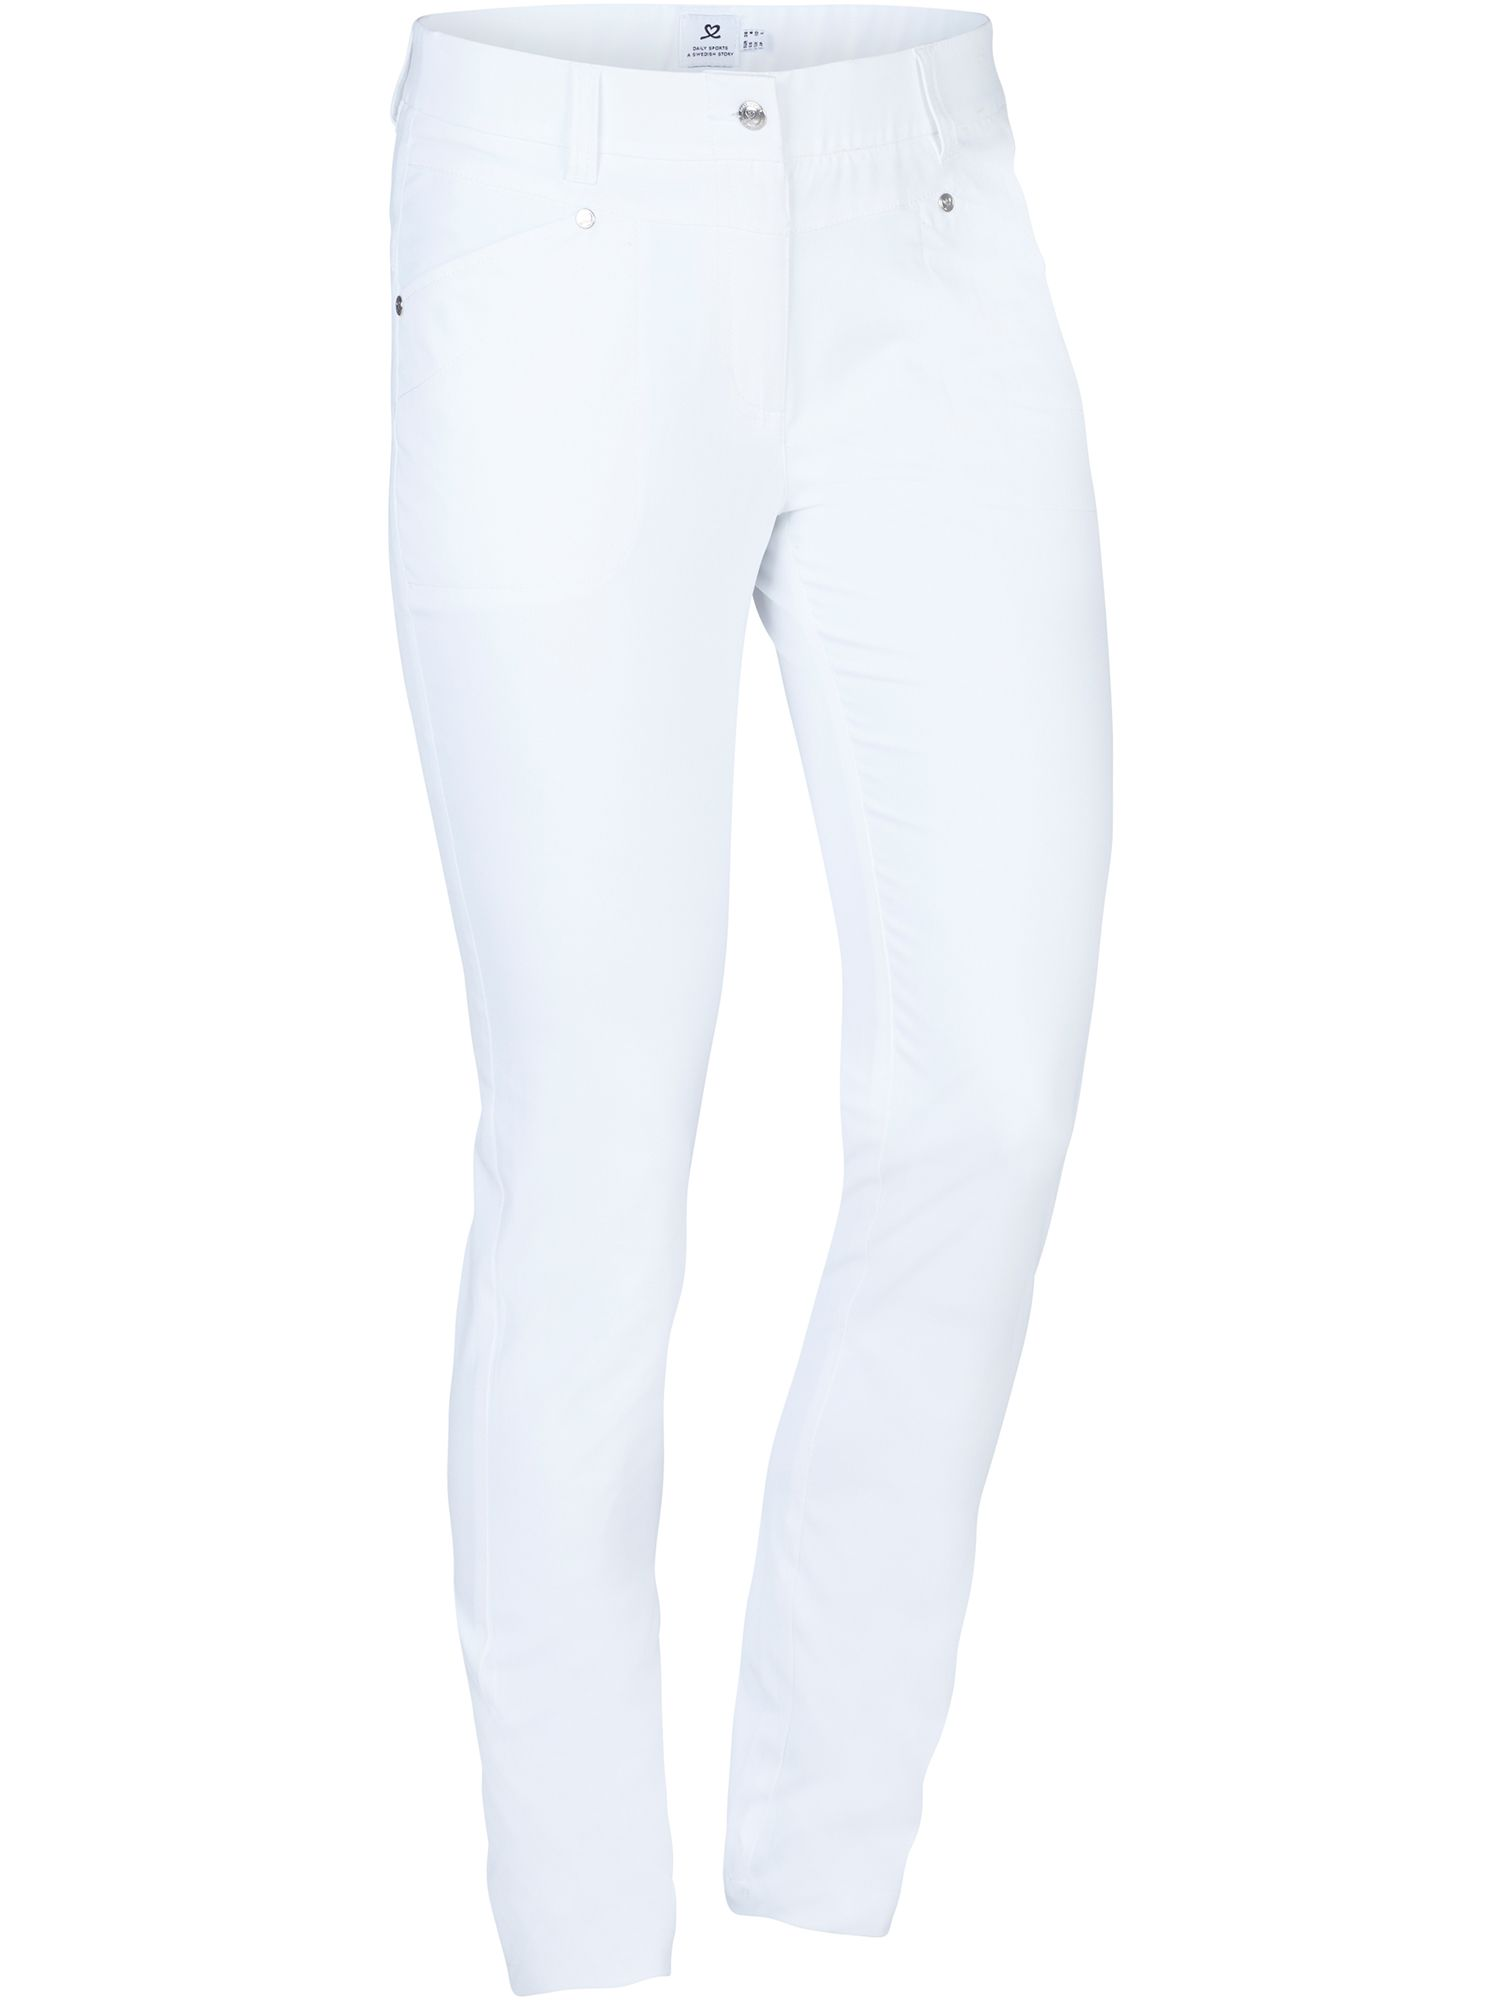 Daily Sports Lyric Trousers, White